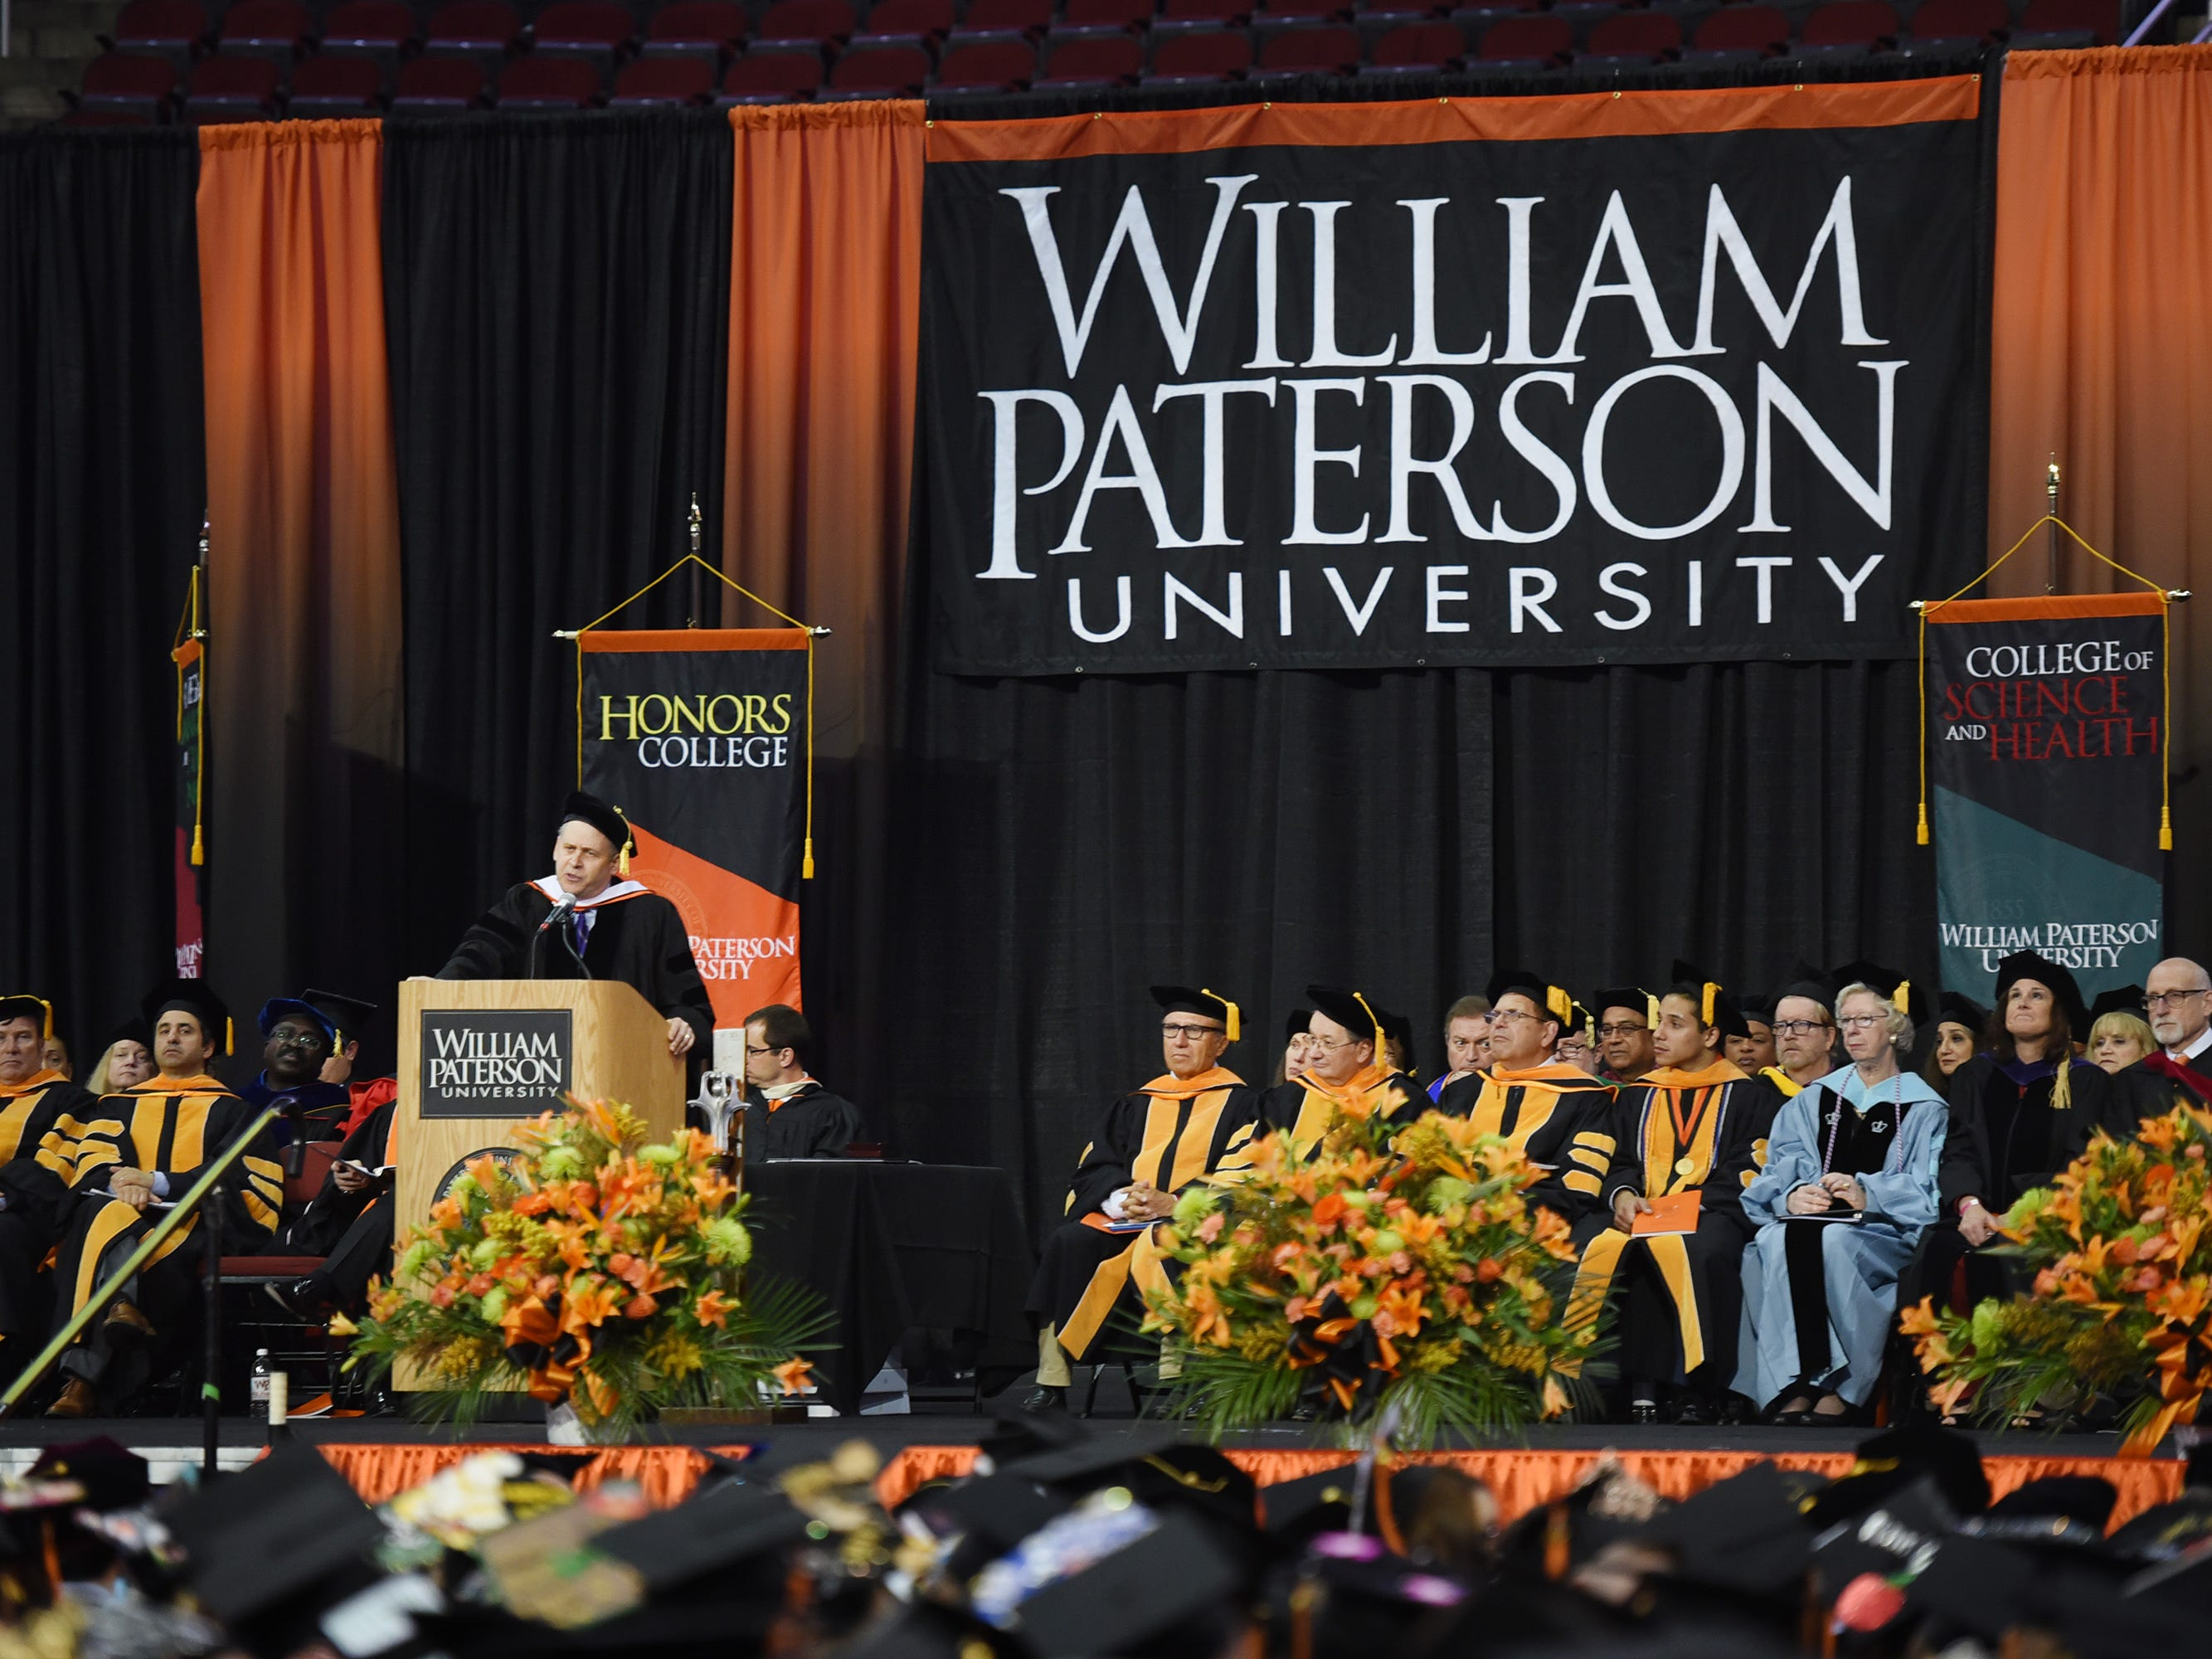 Keynote Speaker, Jonathan Alter, Author and Columnist,  gives a Commencement Address during the William Paterson University 2019 Commencement at the Prudential Center in Newark on 05/15/19.